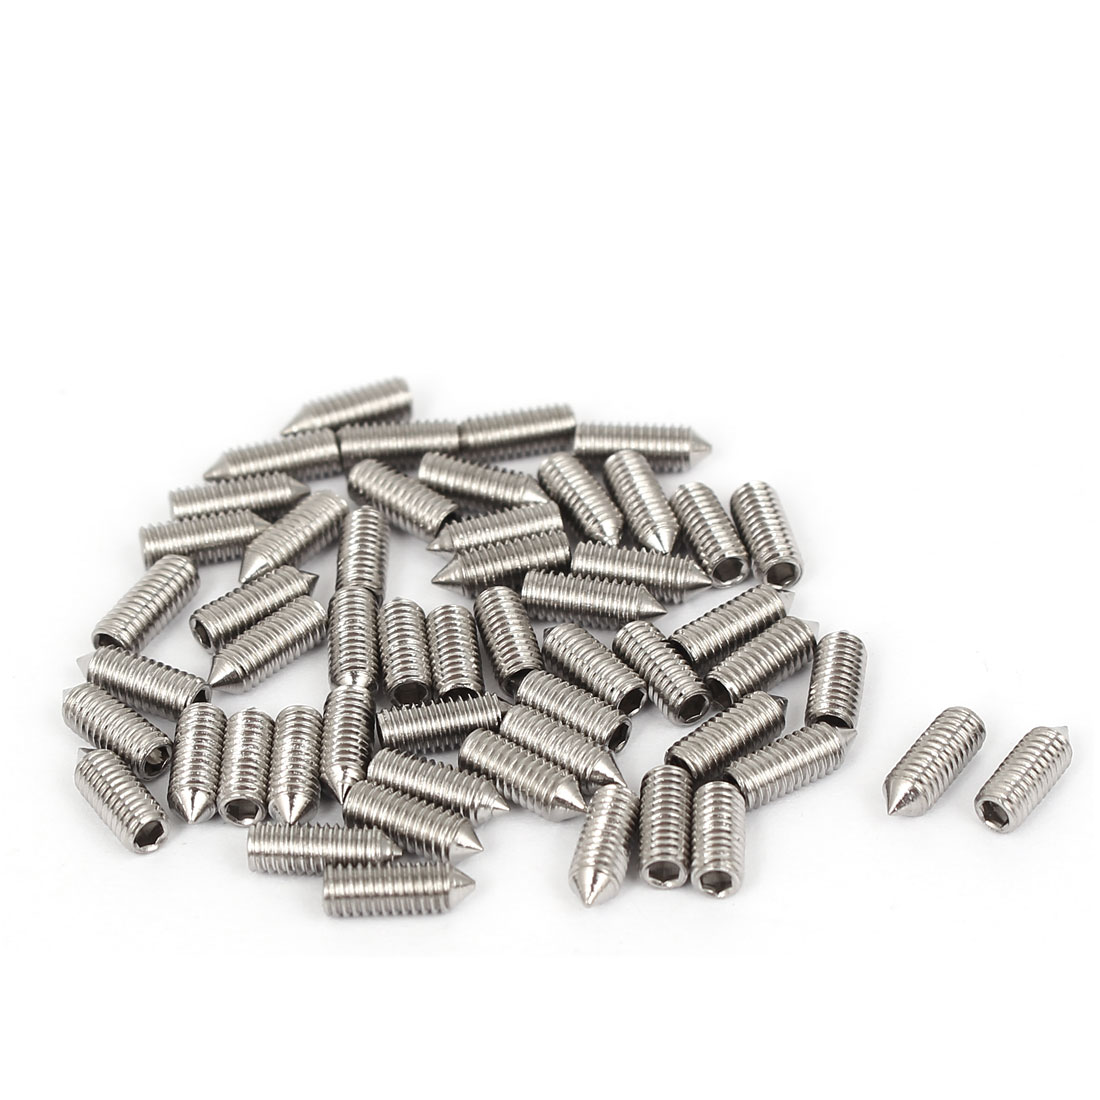 3mm x 8mm Thread 304 Stainless Steel Cone Point Hex Socket Set Grub Screw 50 Pcs